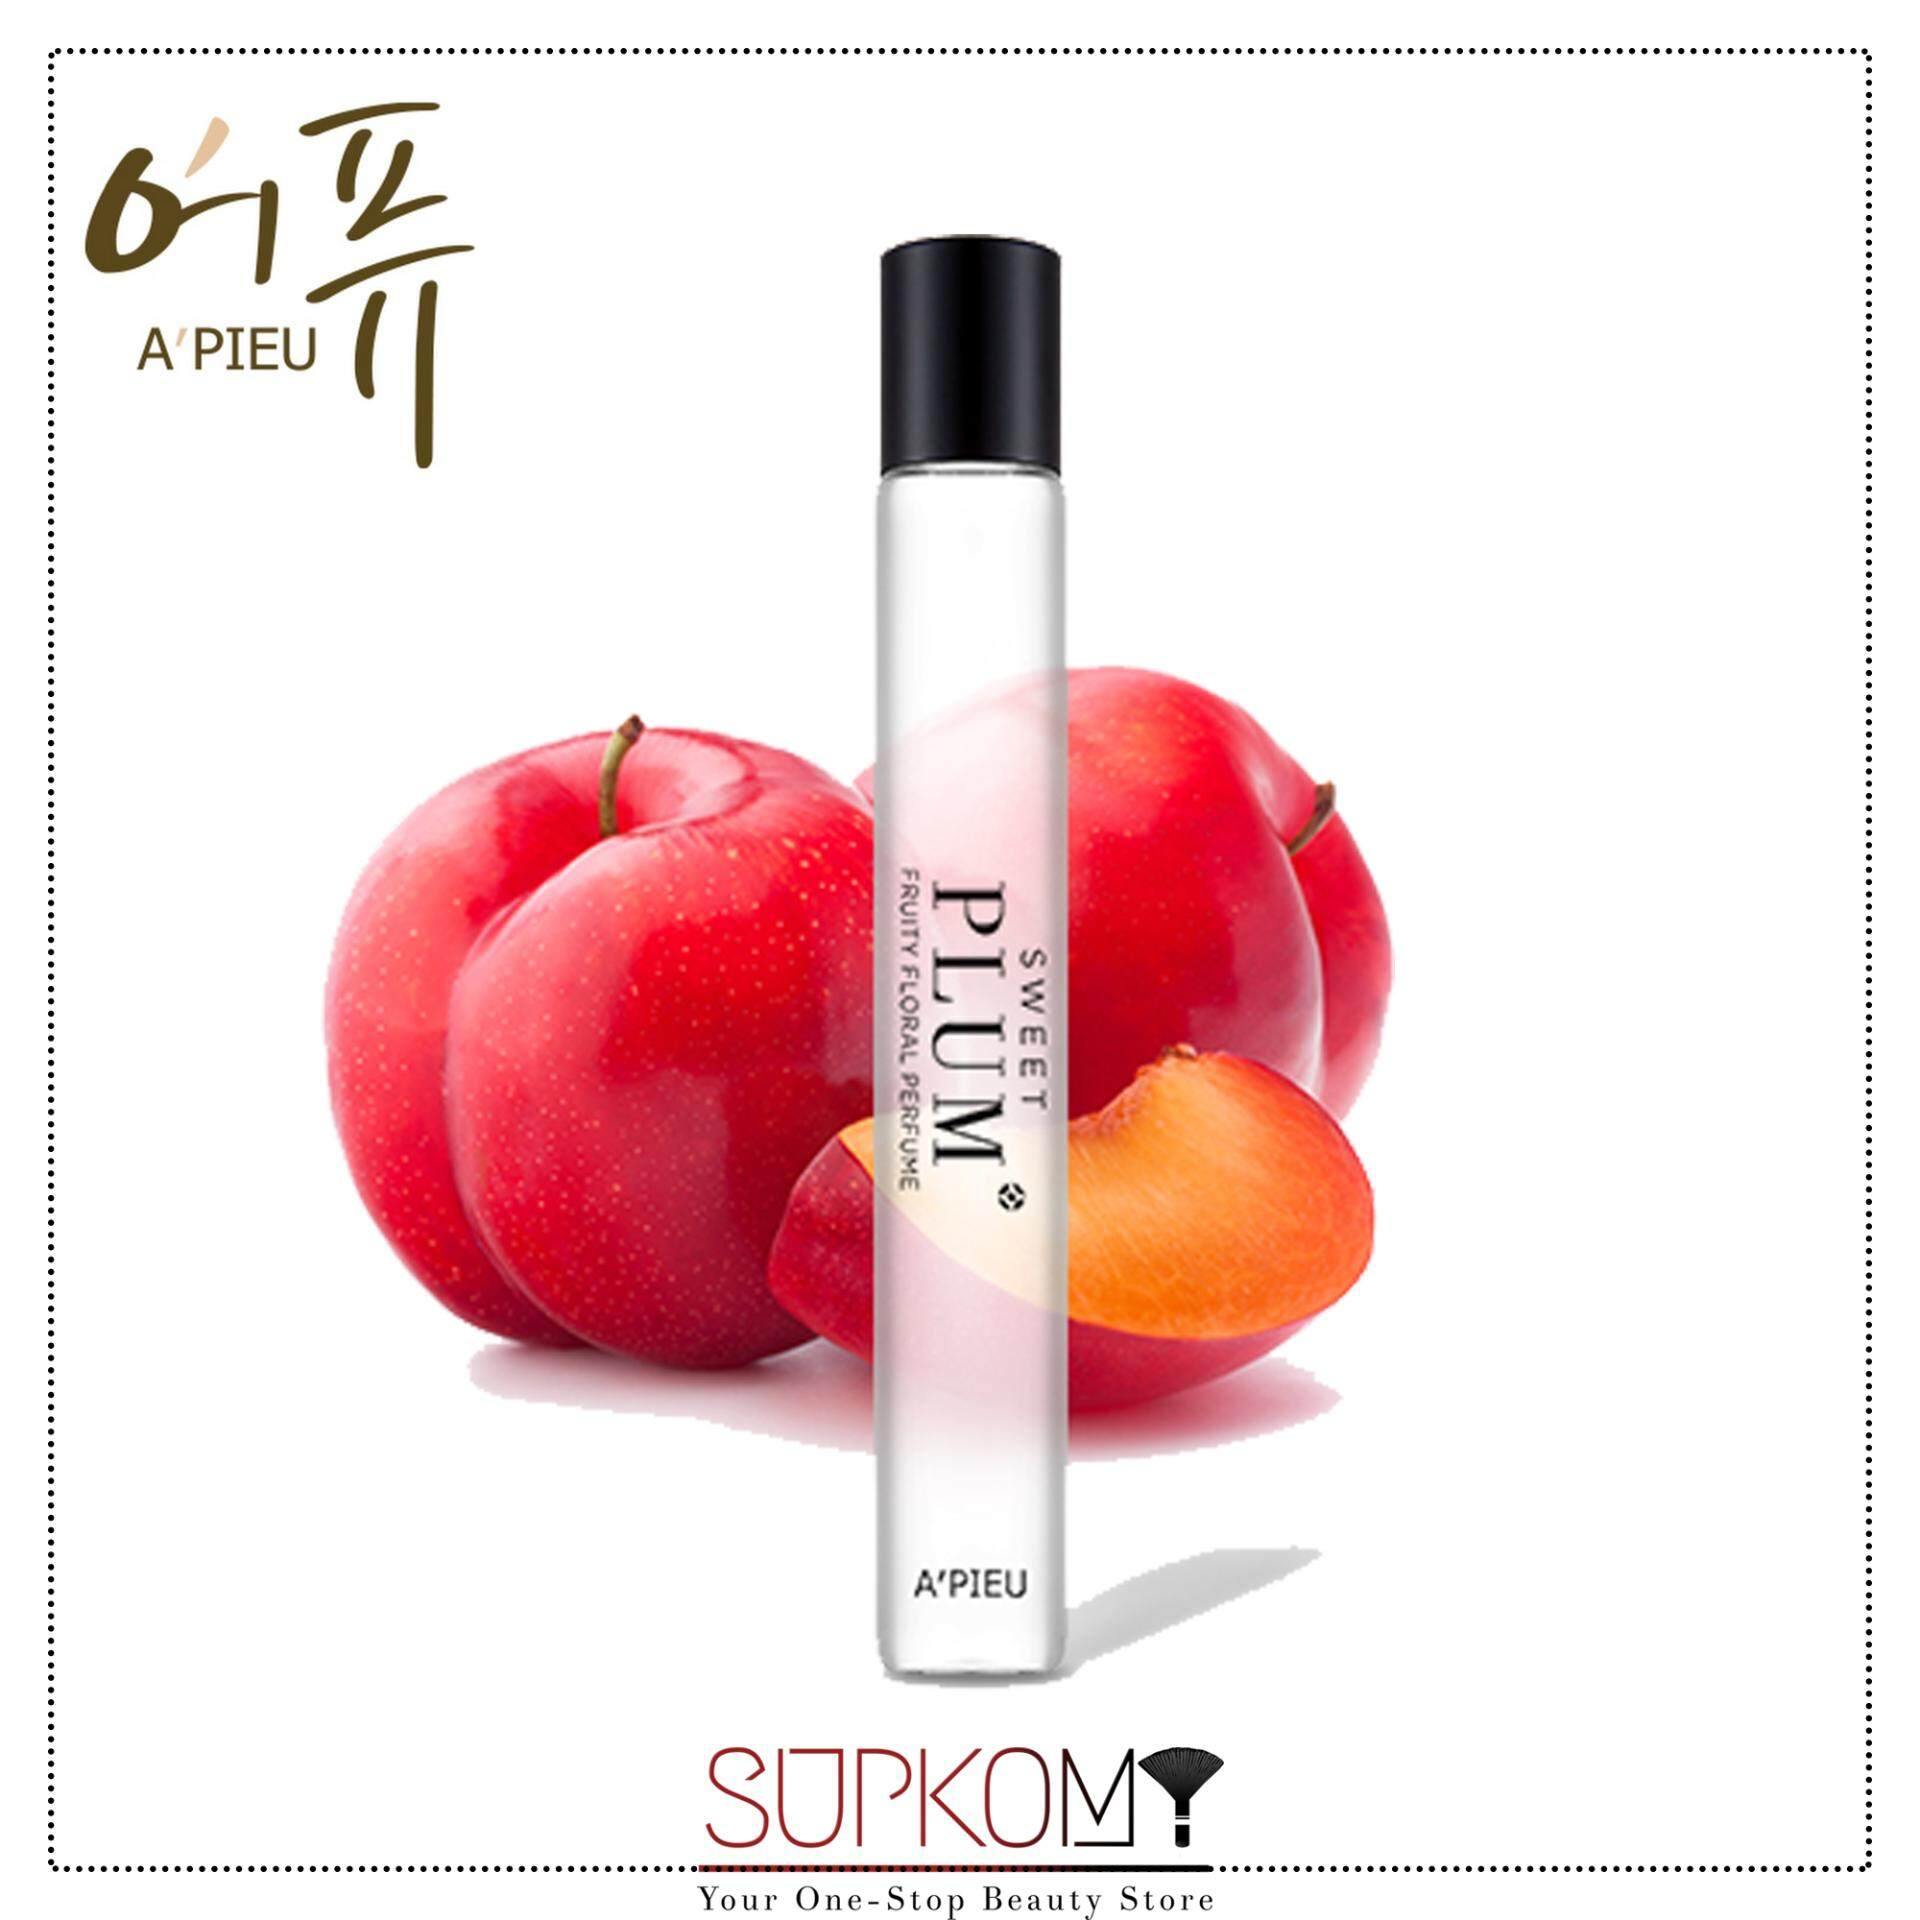 A'PIEU My Handy Roll-on Perfume (Plum) Long-Lasting Perfume Fragrance